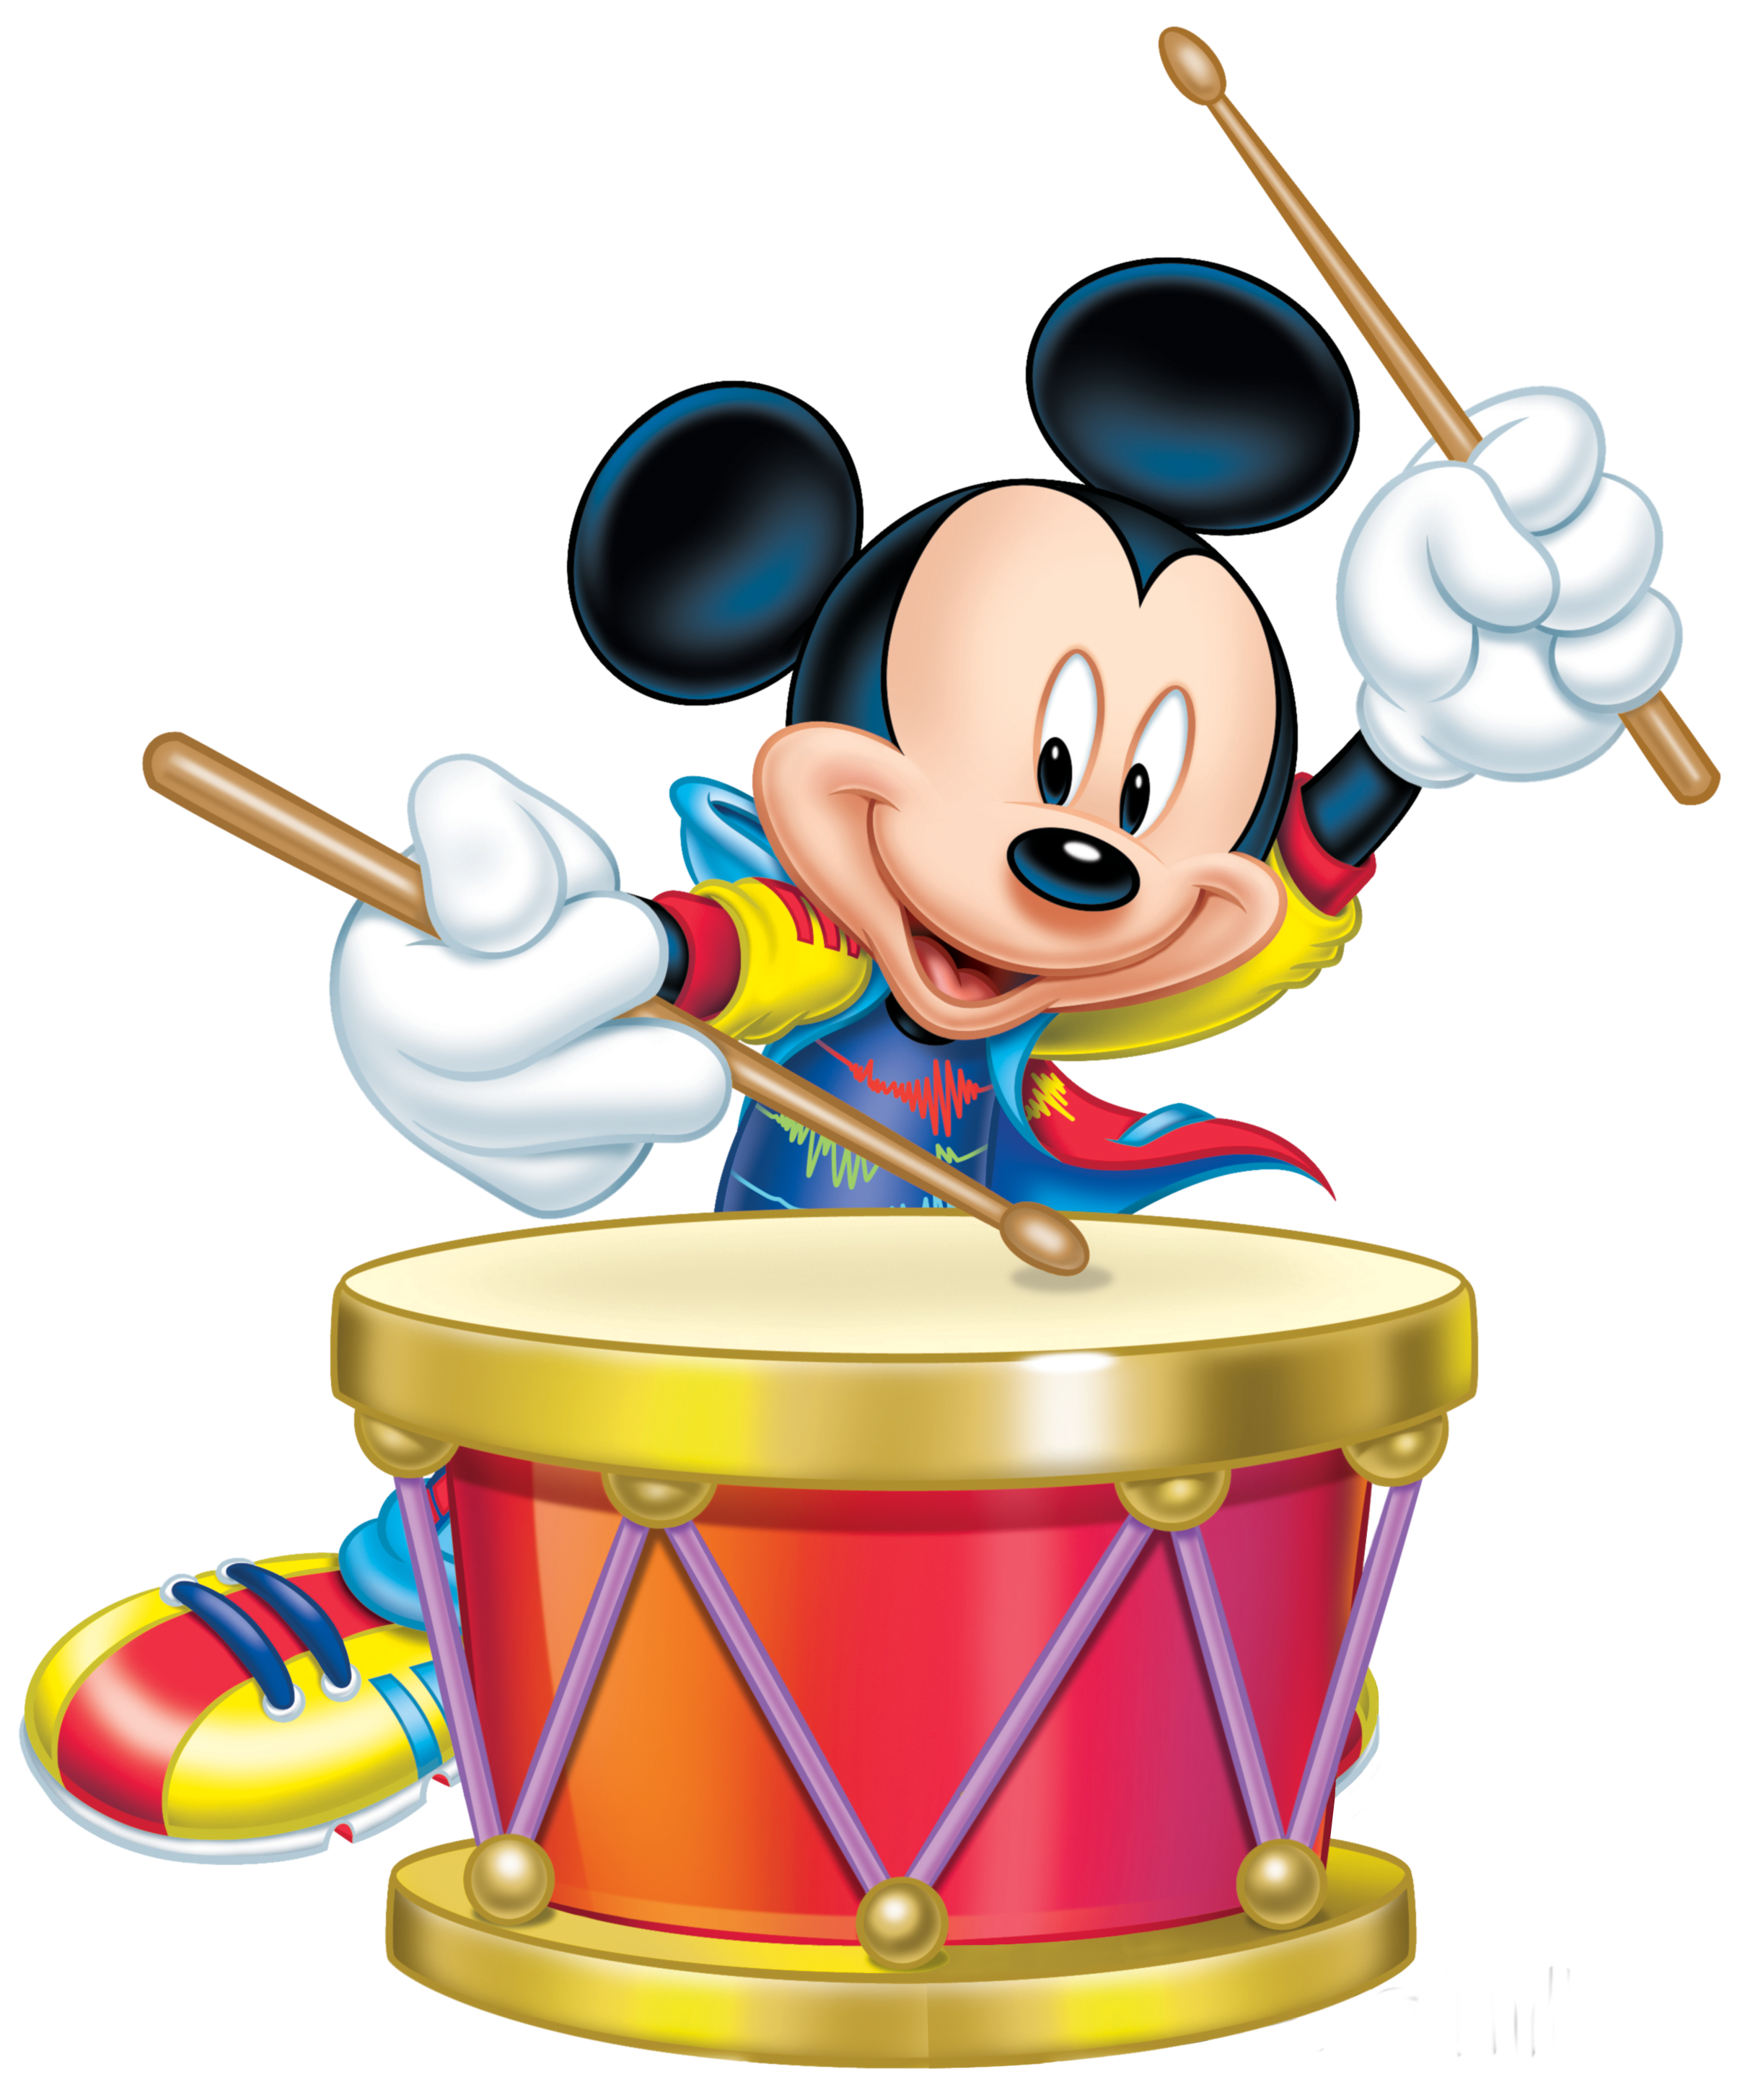 Drums png clipart. Mickey mouse with drum